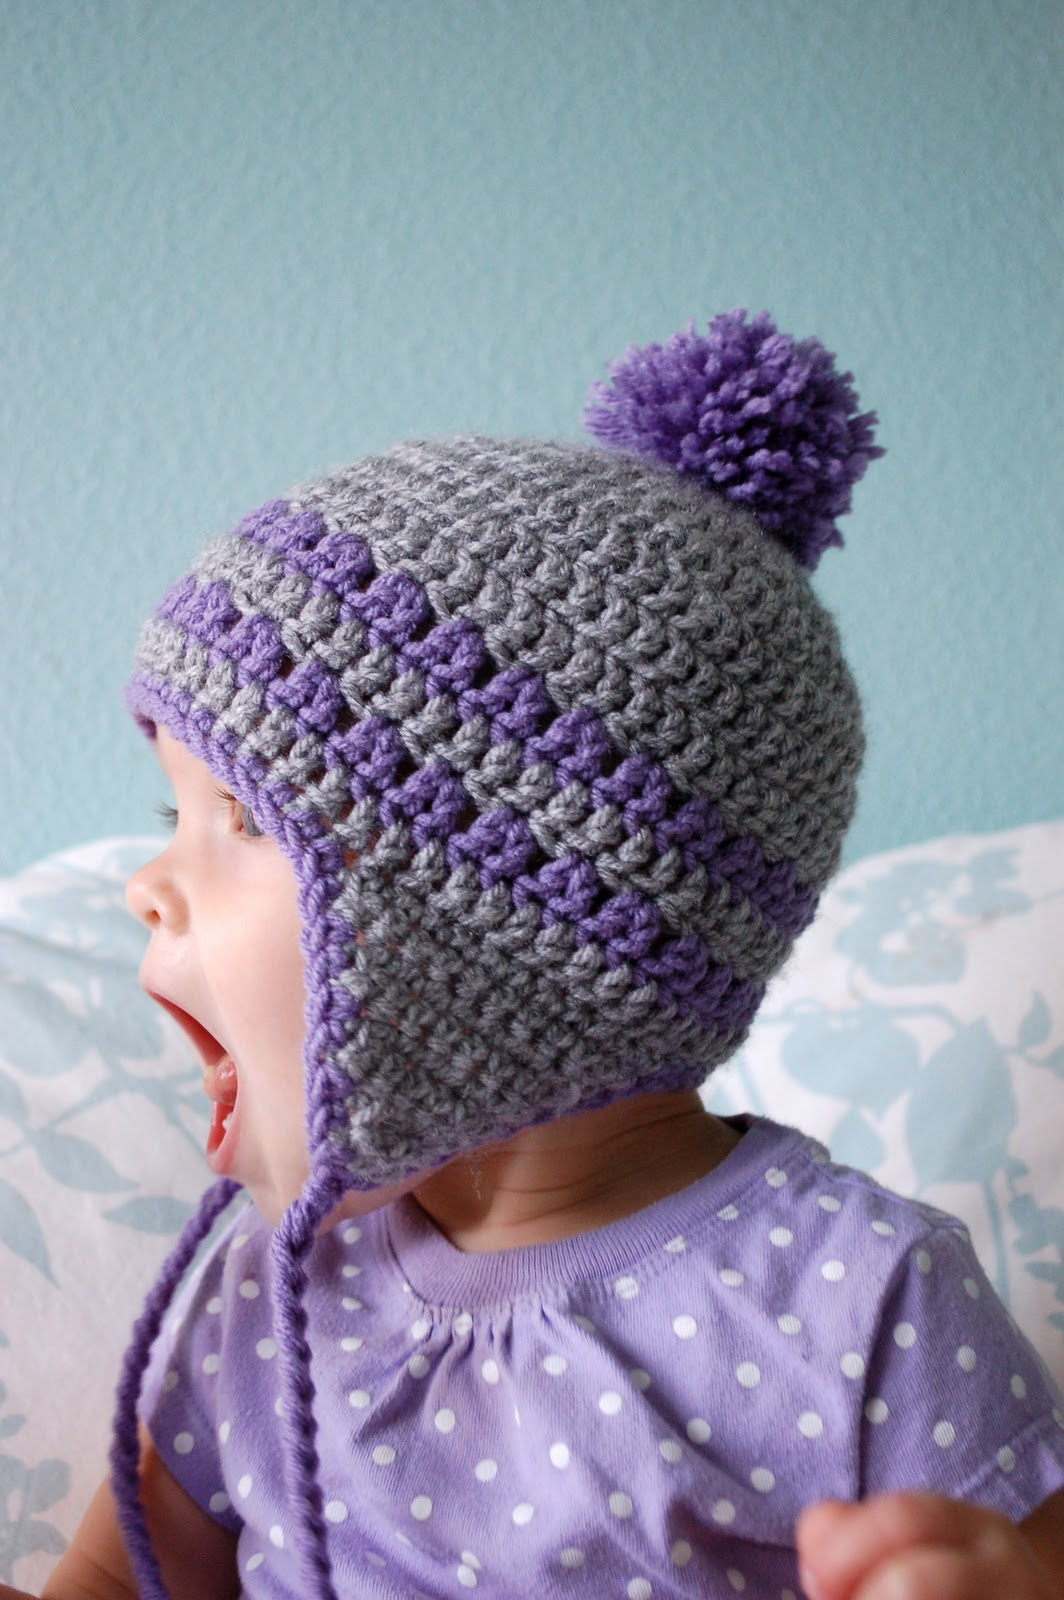 Free Crochet Patterns For Earflap Hats : Alli Crafts: Free Pattern: Earflap Hat - 9-12 Months